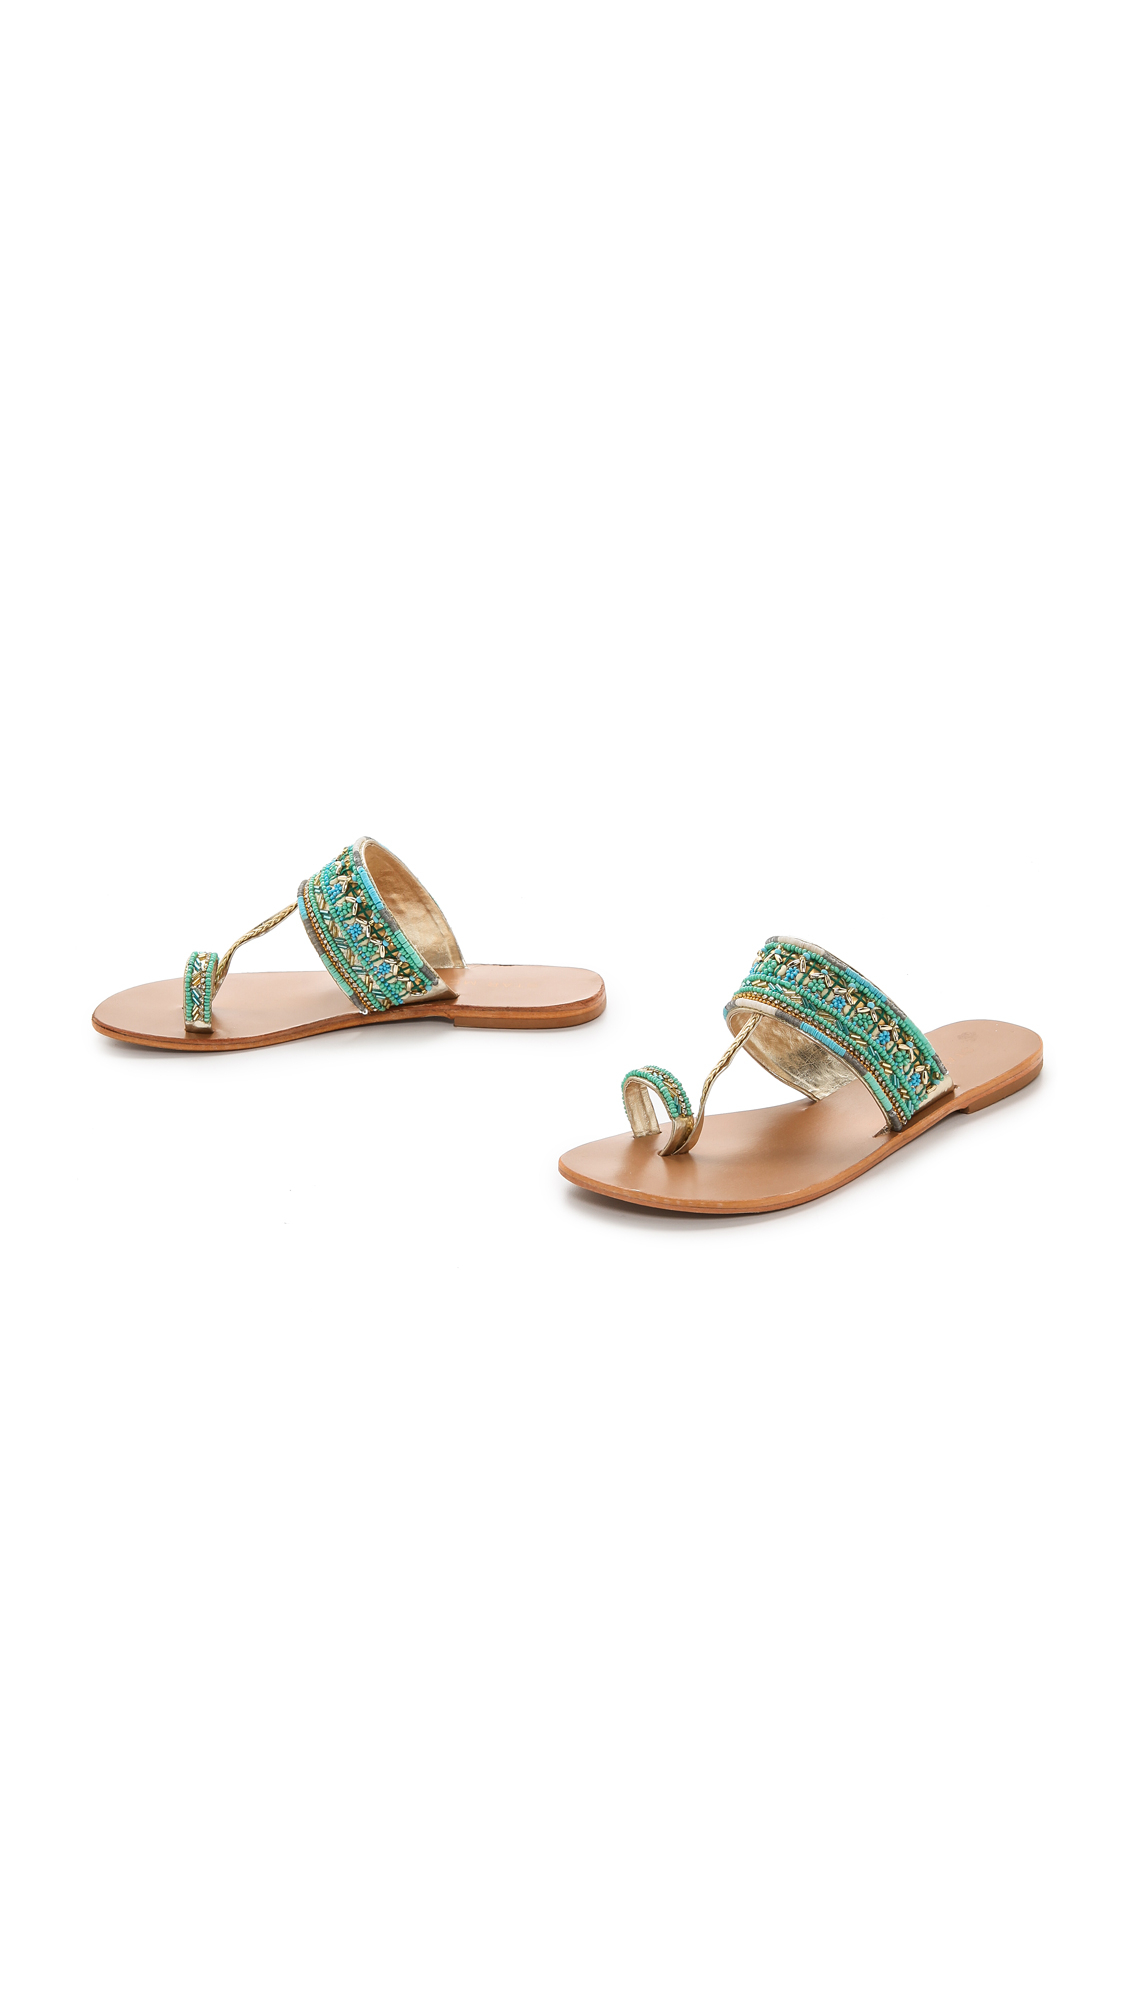 Star Mela Sabri Beaded Sandals - Turquoise In Blue - Lyst-5932